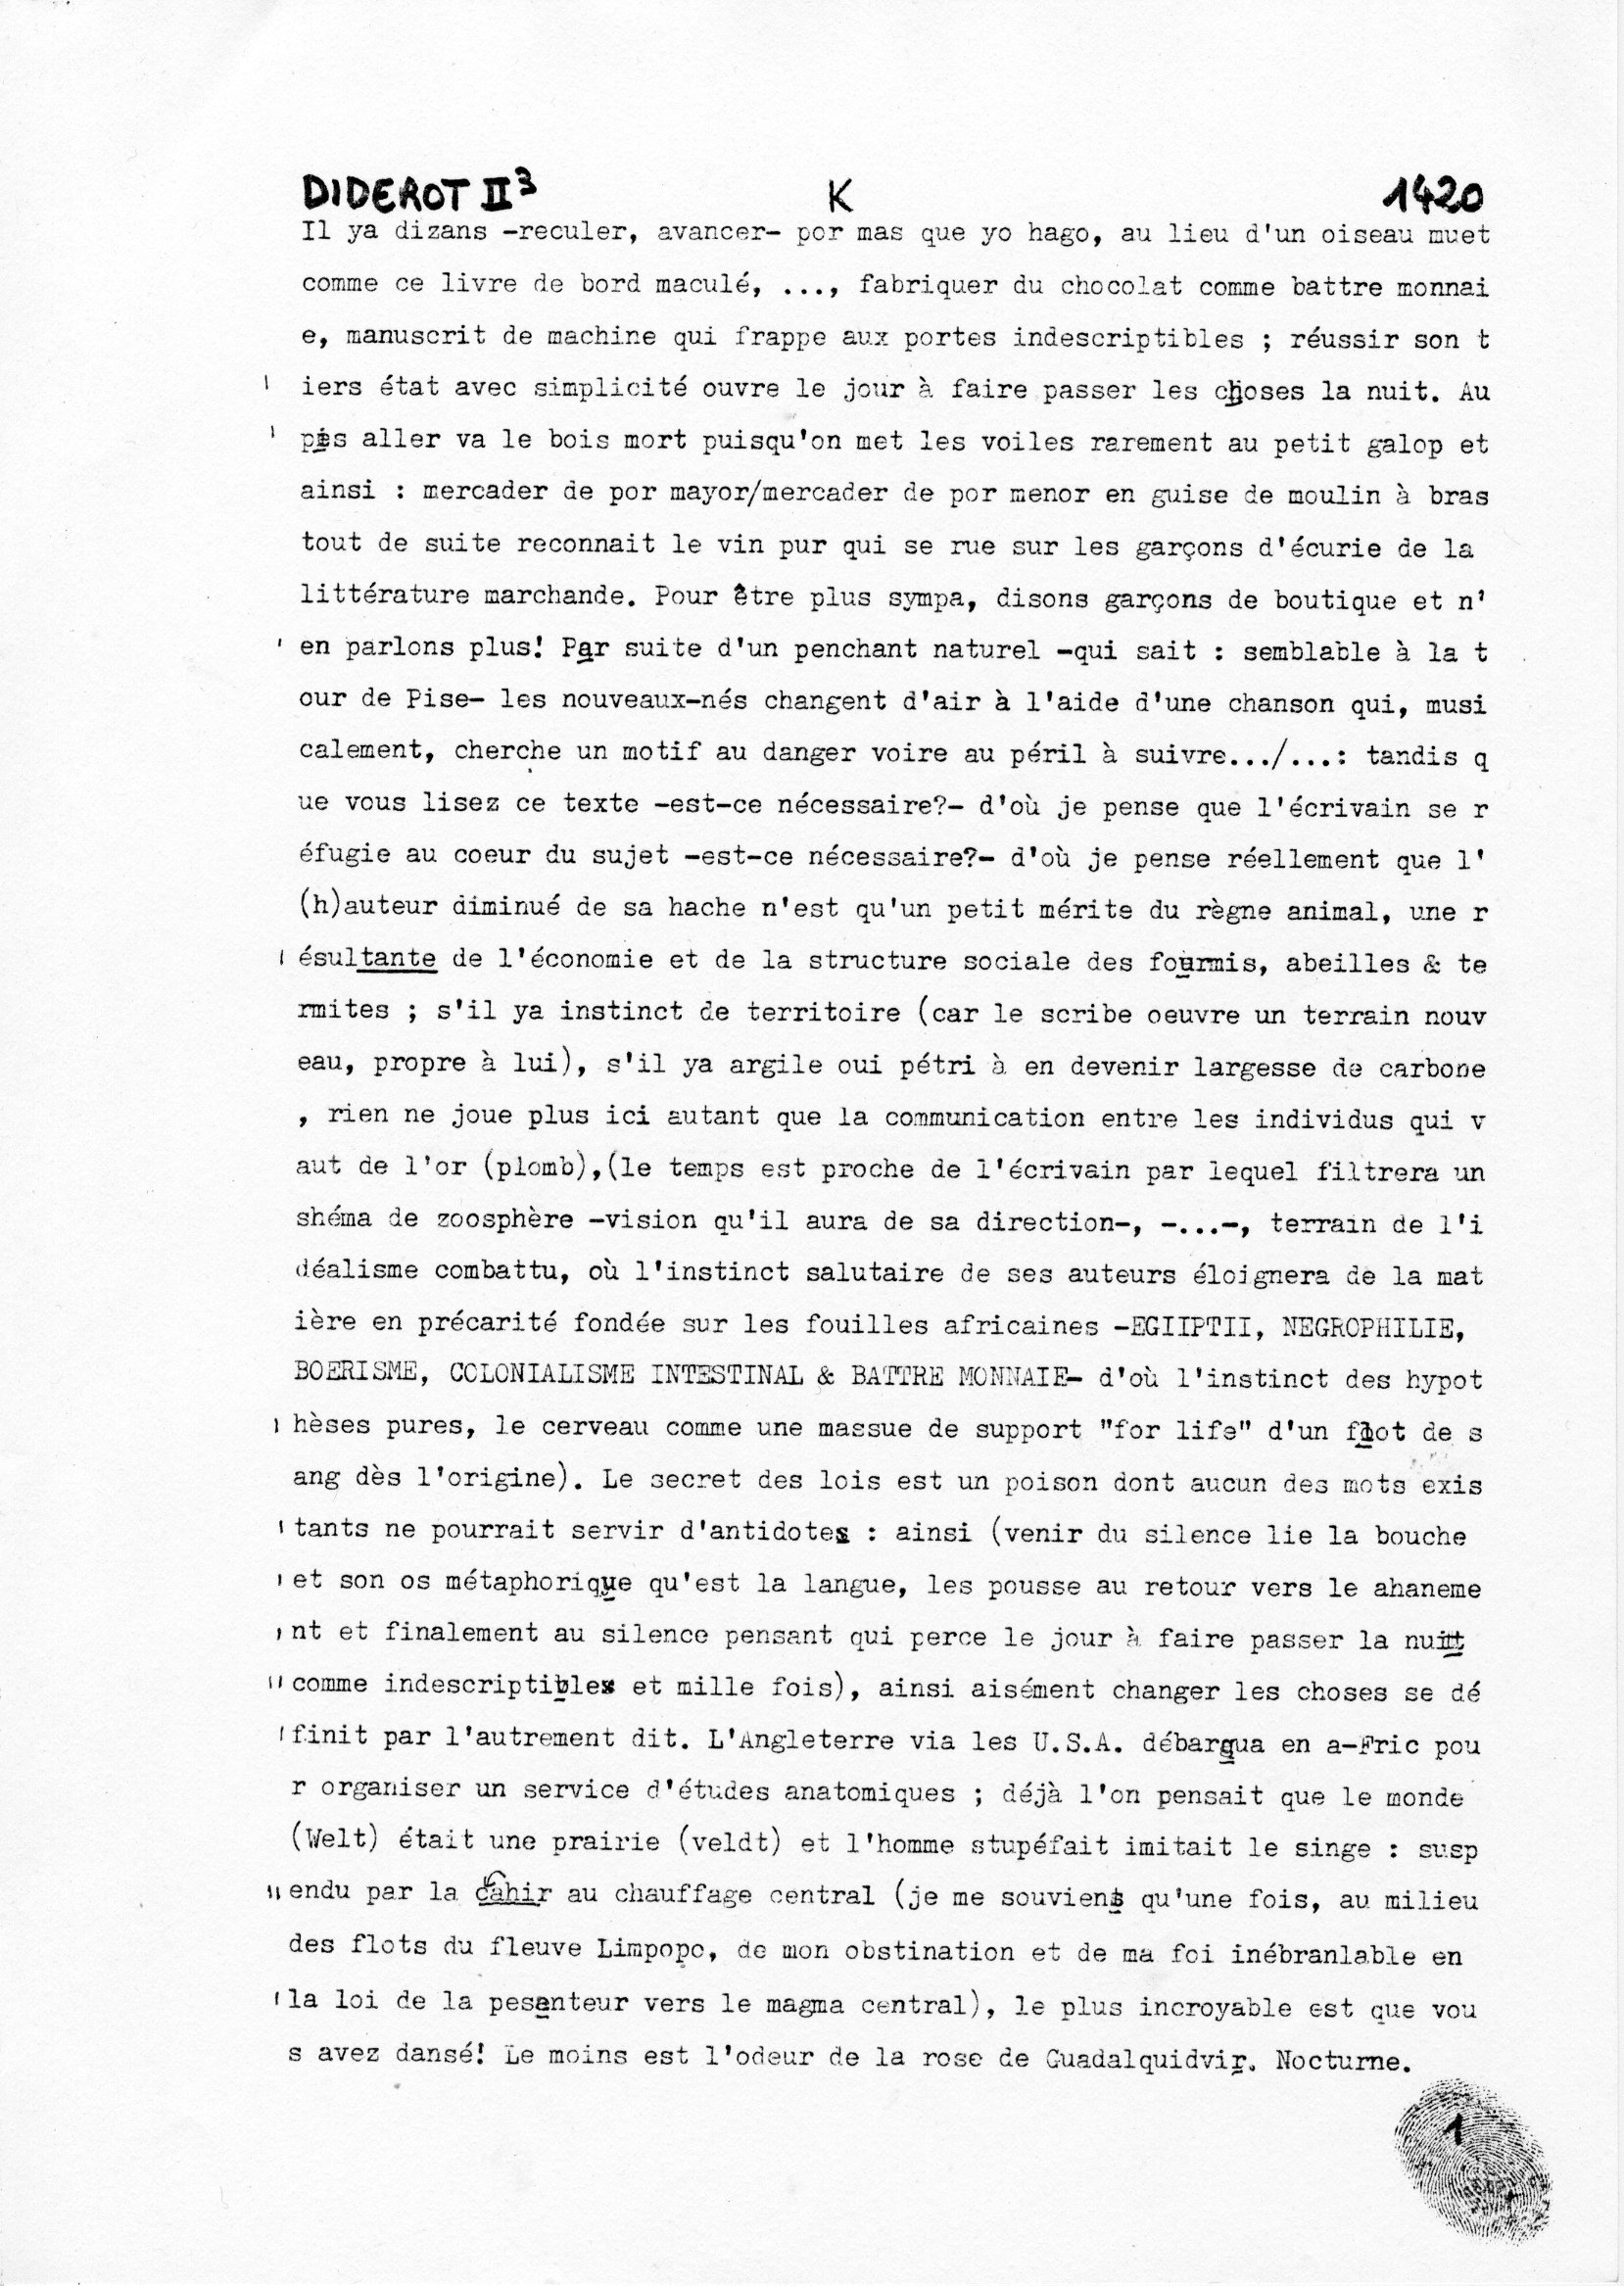 page 1420 Diderot II p3 K